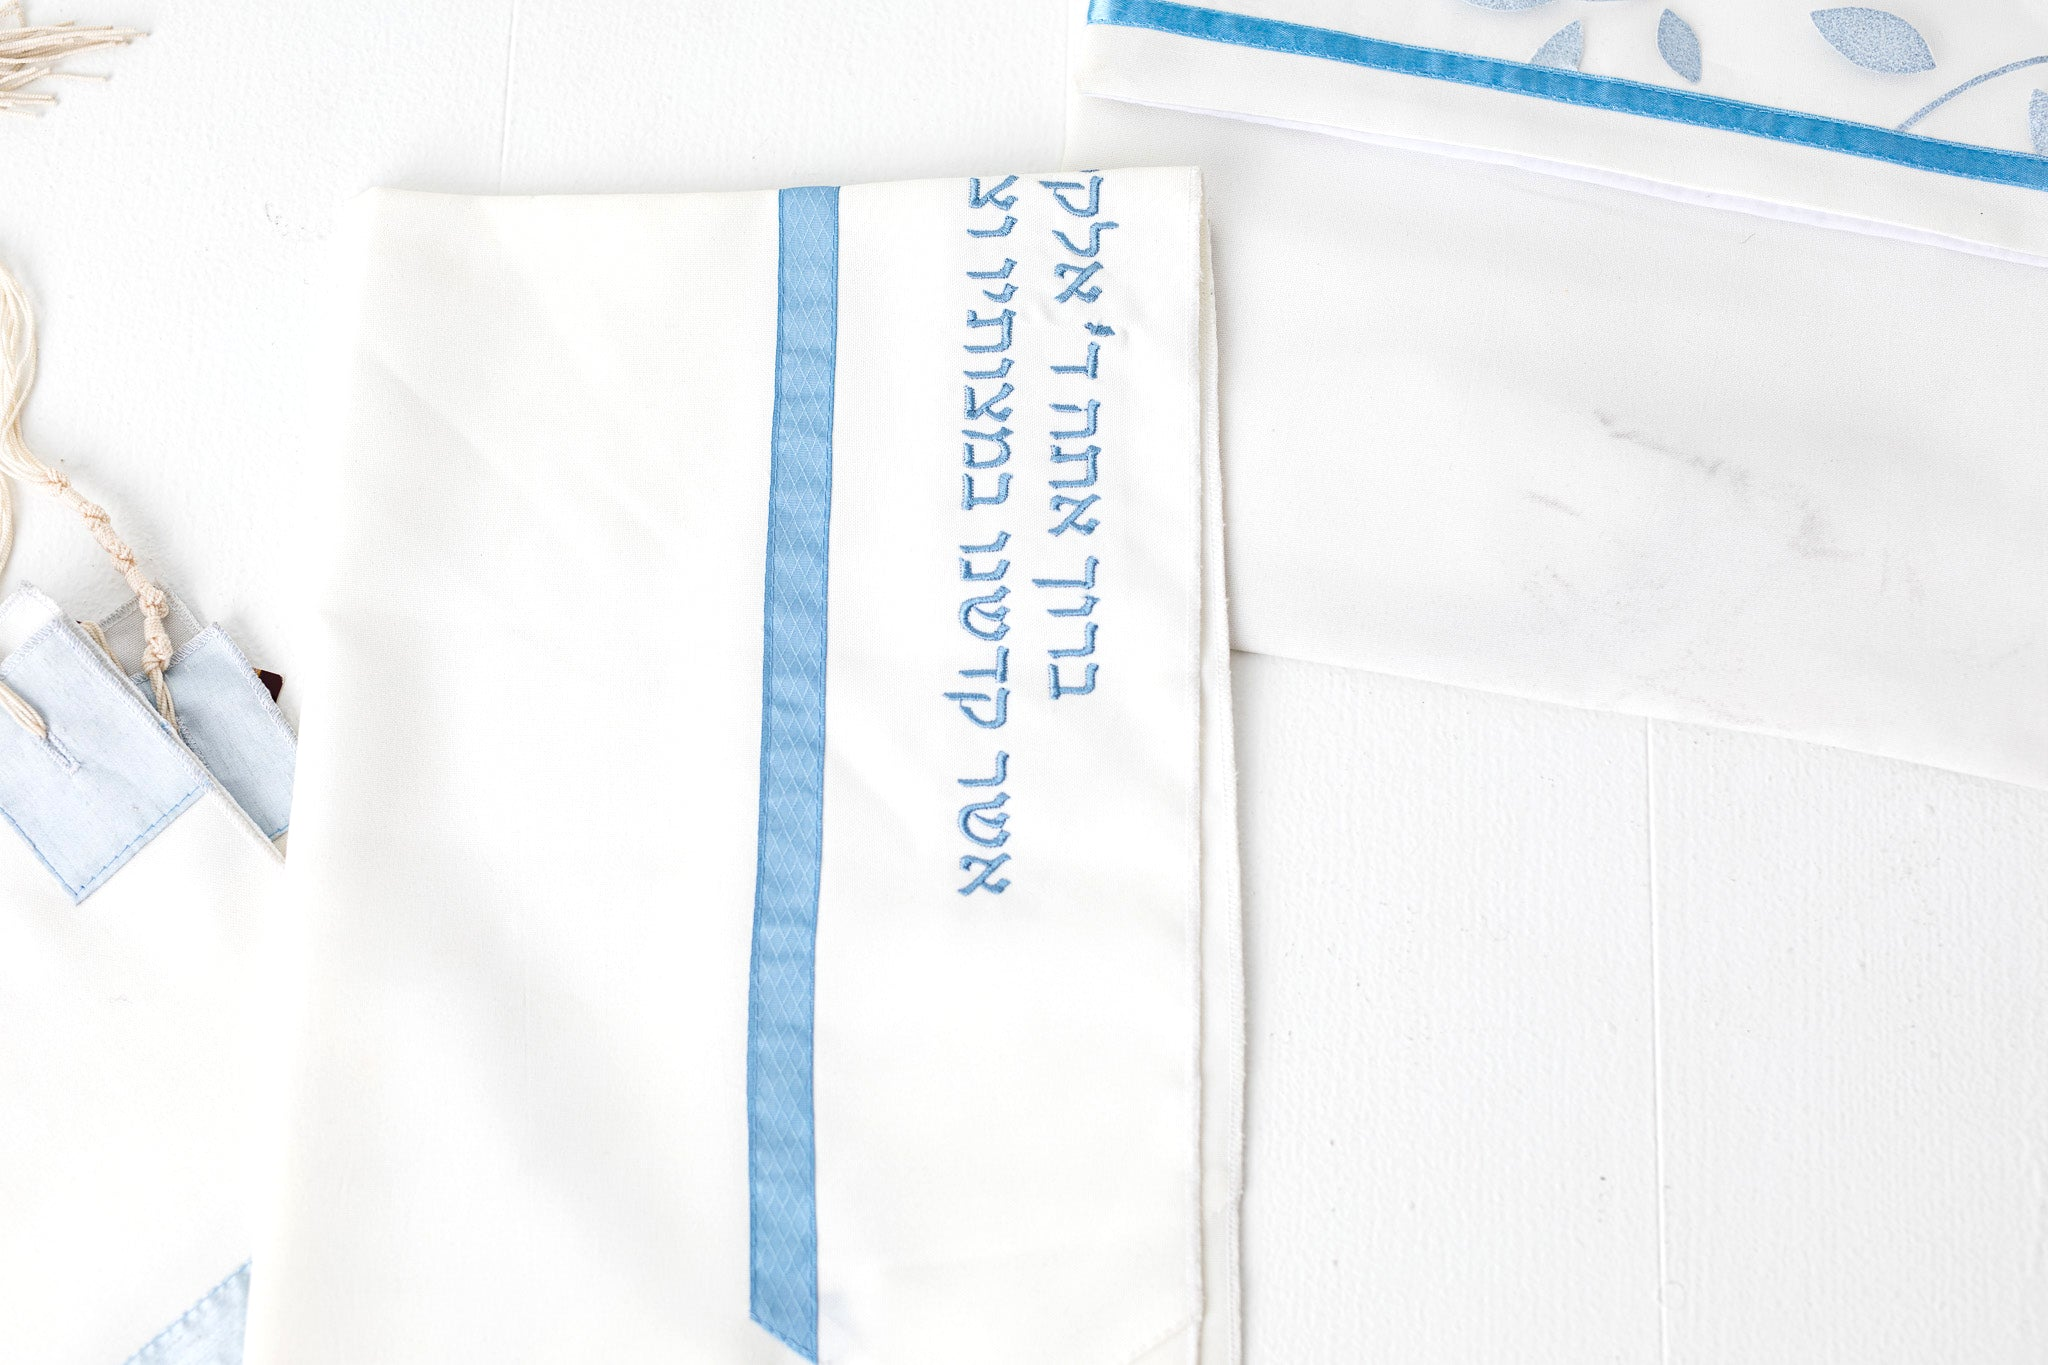 Tallit- Ivory tallit with light blue floral design with a bit of sparkle